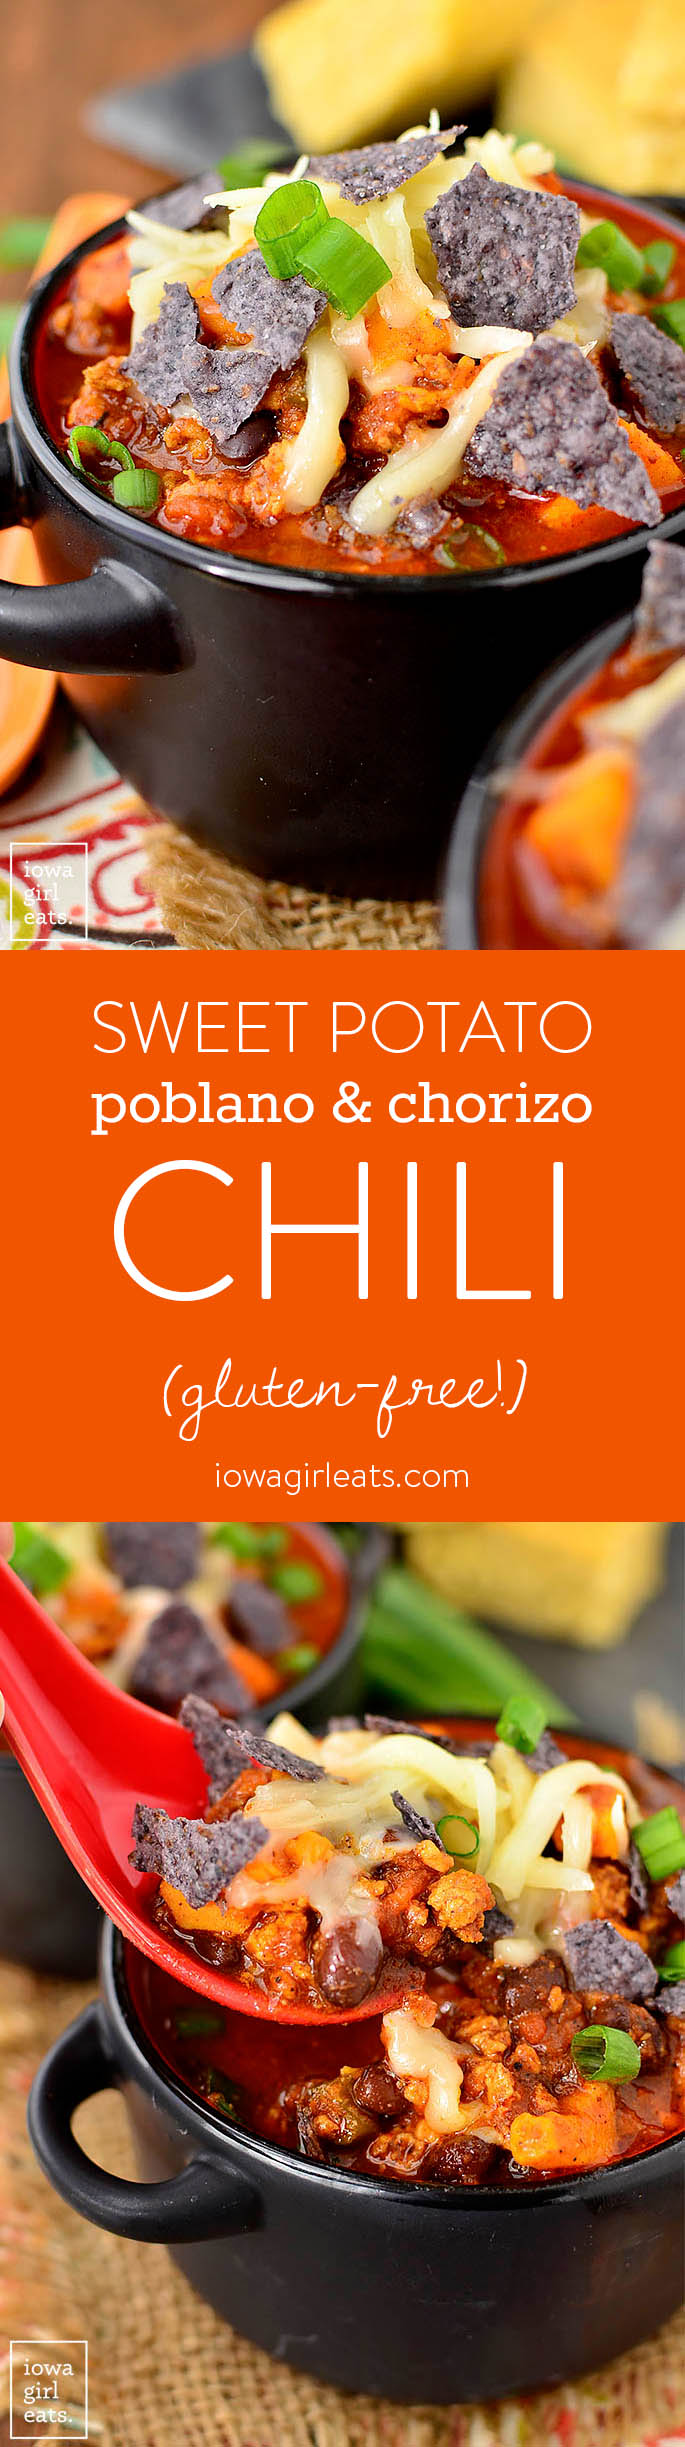 Sweet Potato, Poblano and Chorizo Chili is a southwest twist on classic chili with just the right amount of spice. Quick and easy to whip up, too!   iowagirleats.com